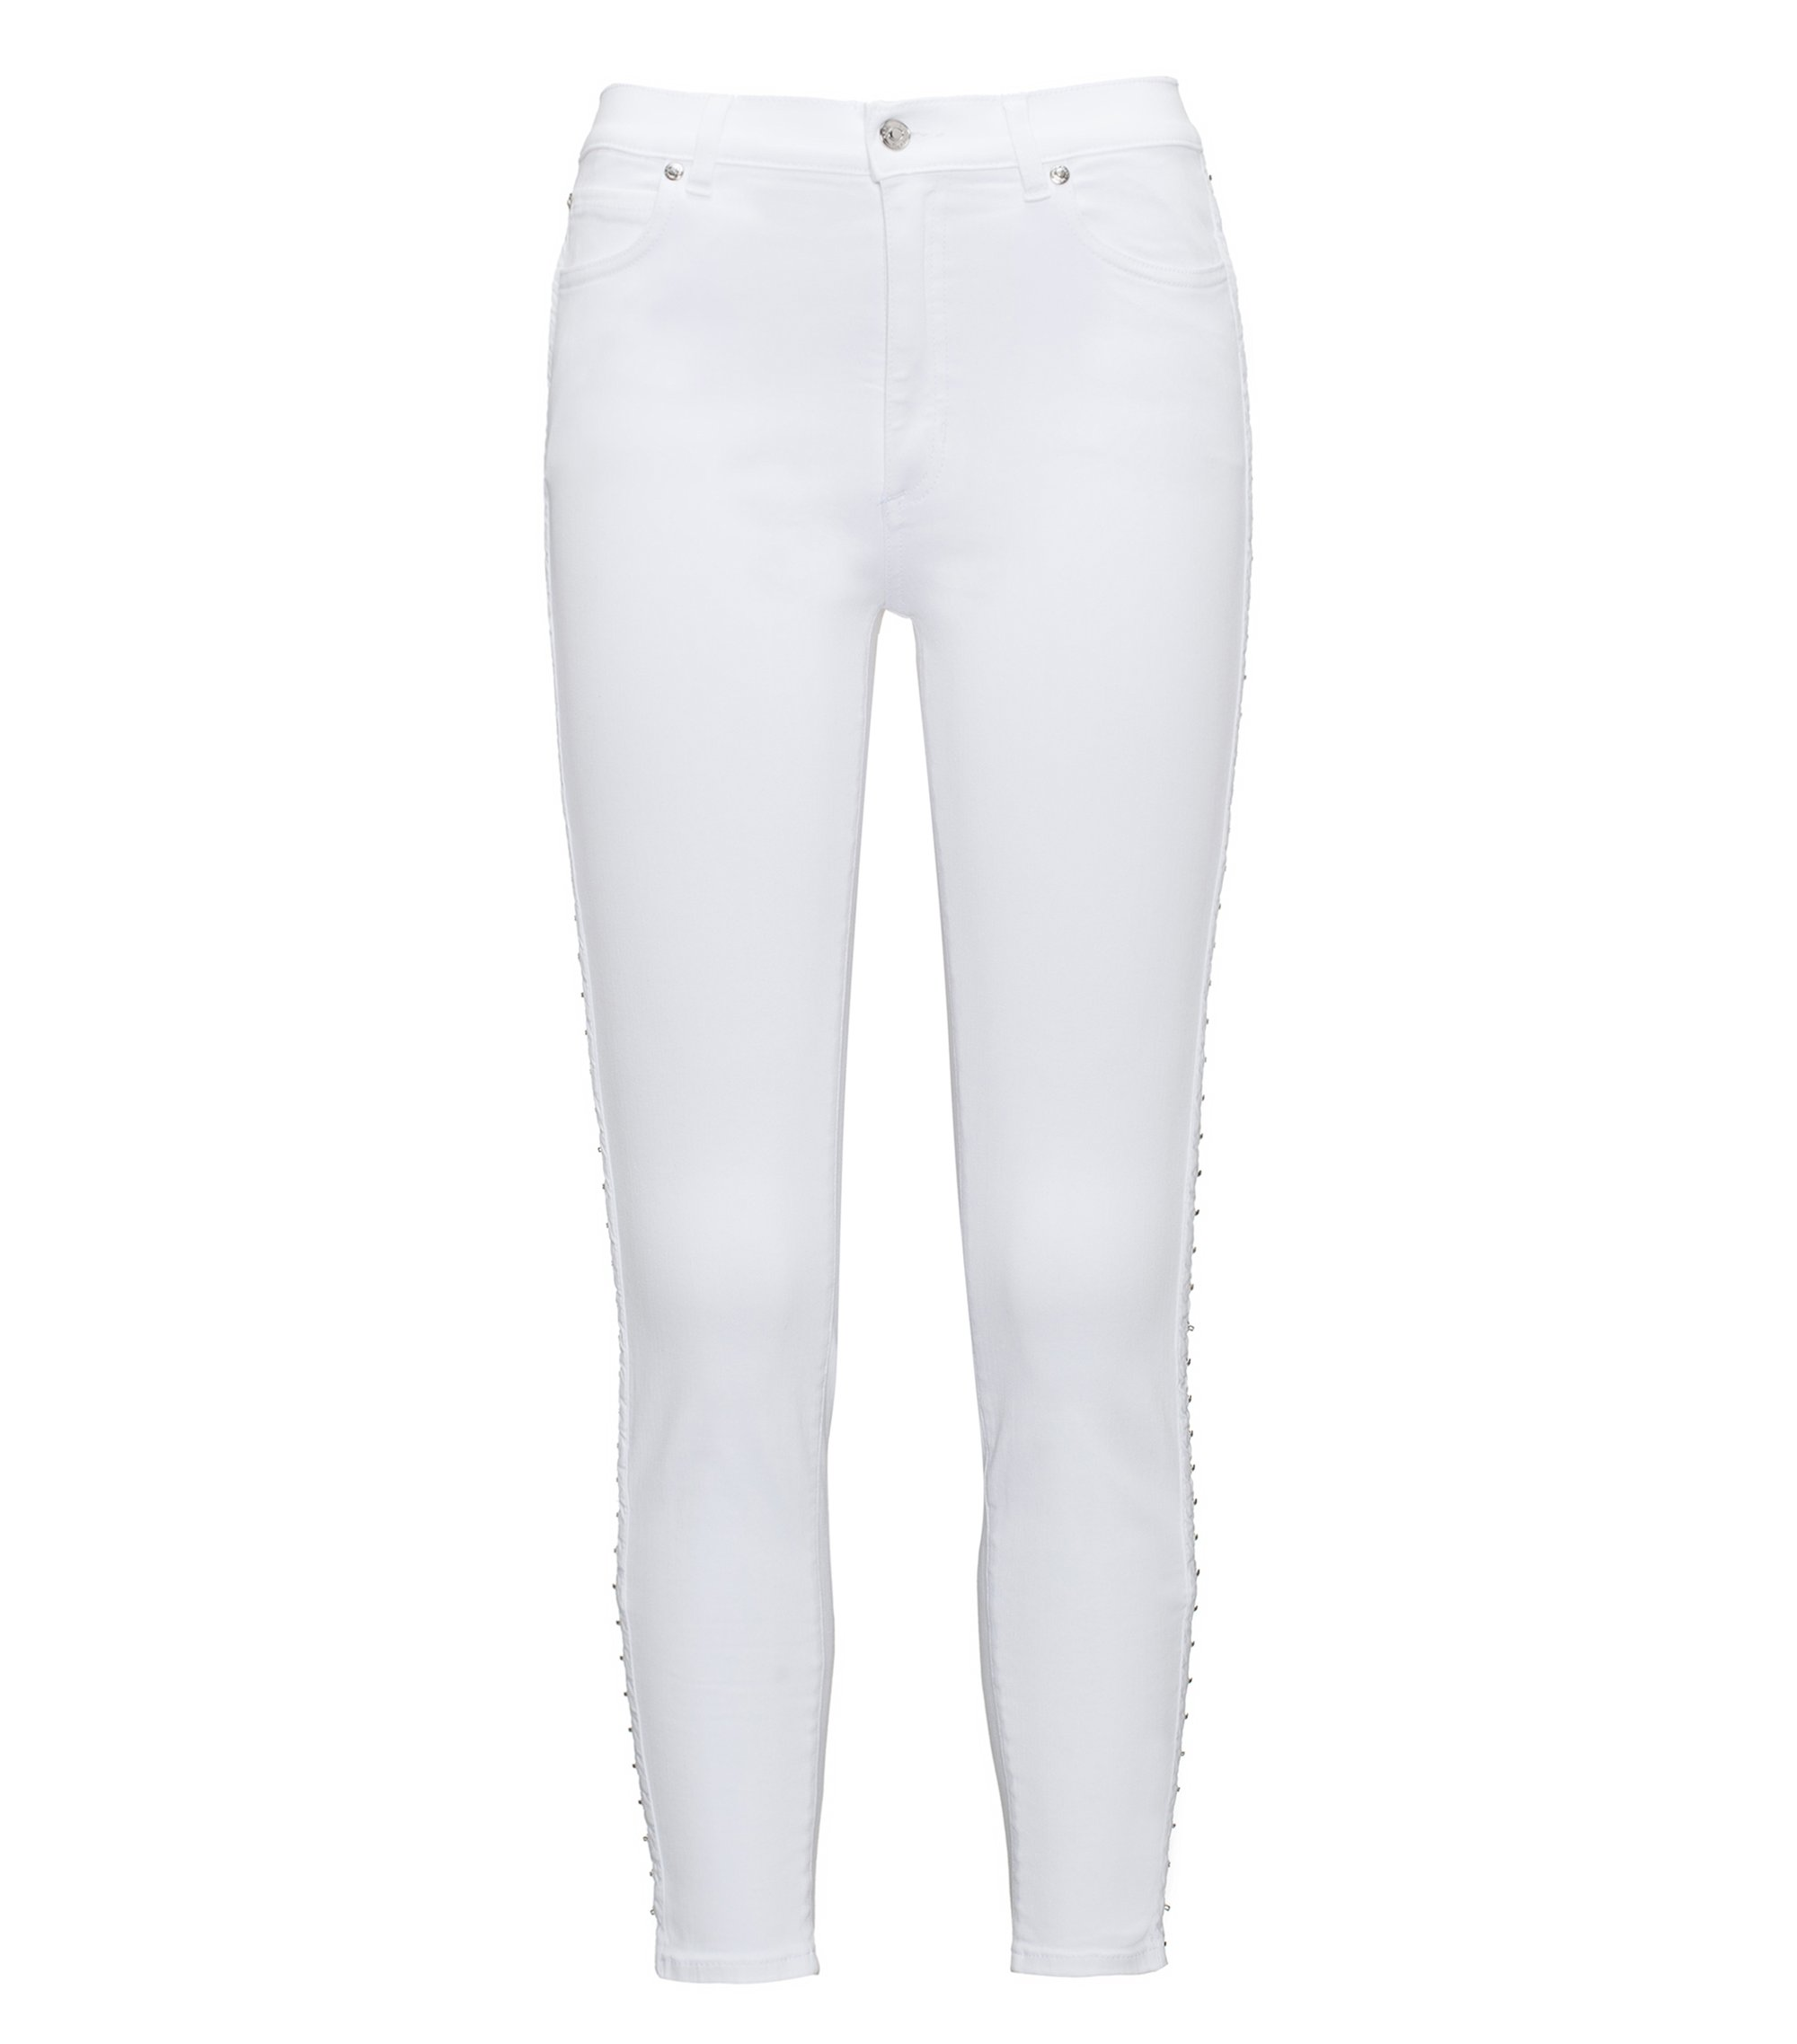 Stretch Denim Jean, Skinny Fit | Gerna, White